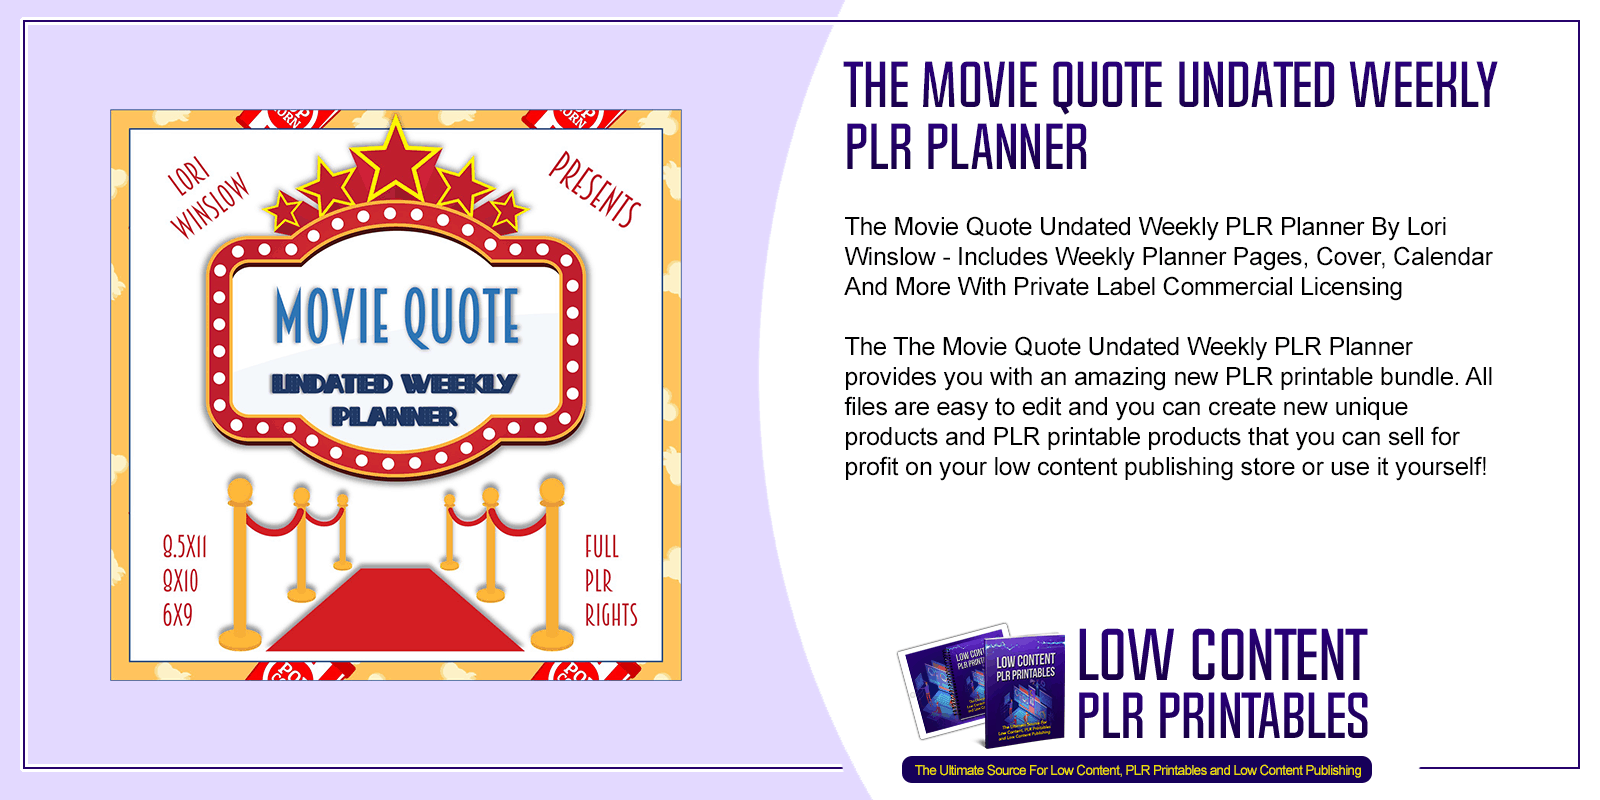 The Movie Quote Undated Weekly PLR Planner